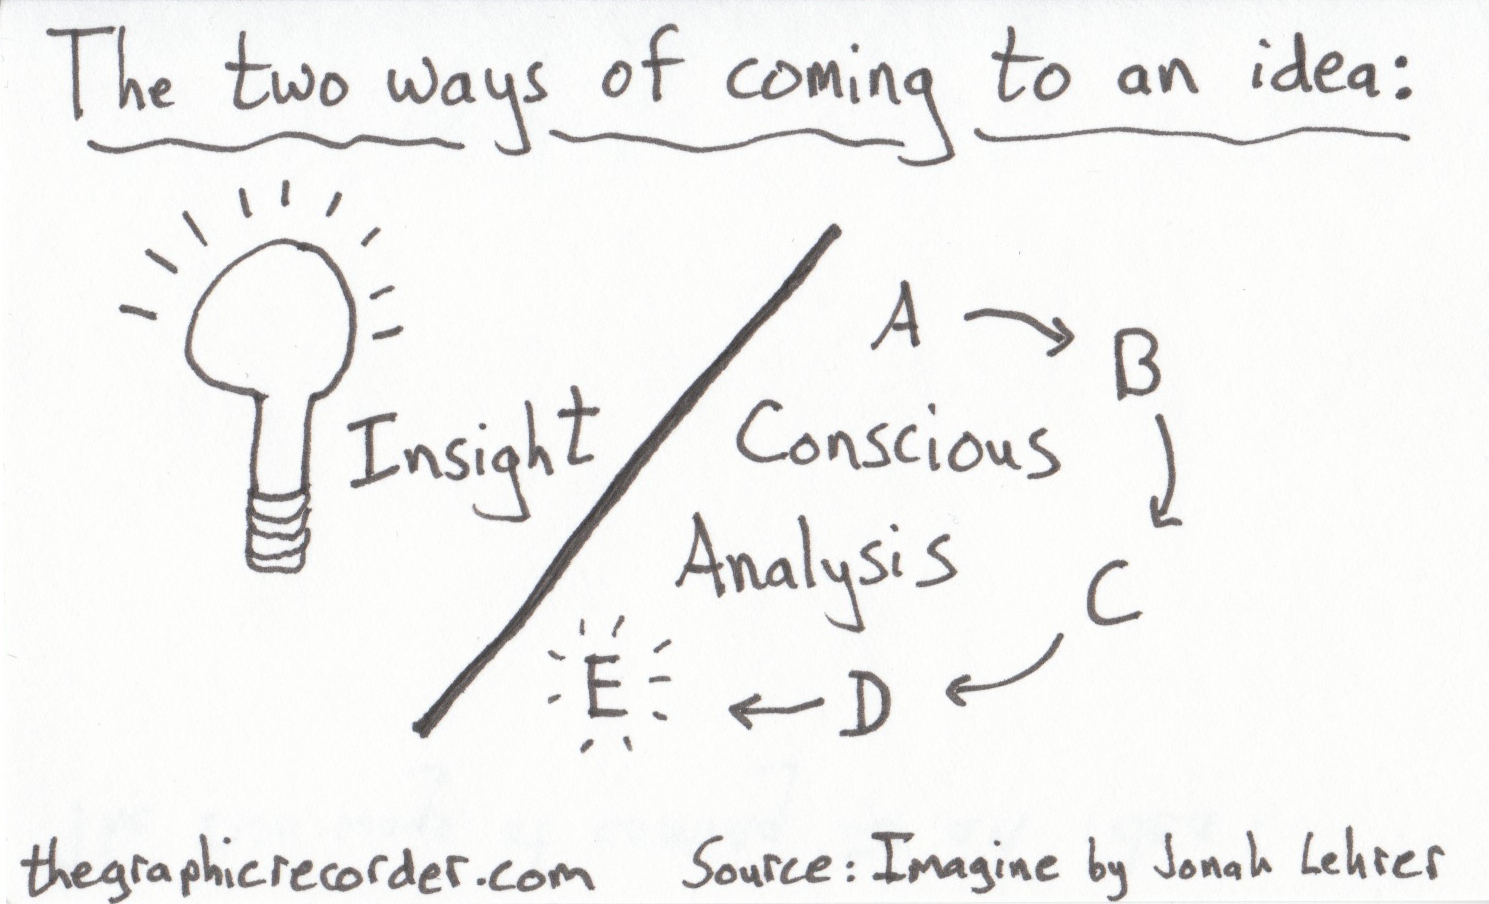 The Graphic Recorder - Note Card Sketch Notes Post - One Card One Concept - Insight vs Conscious Analysis - Jonah Lehrer - Imagine